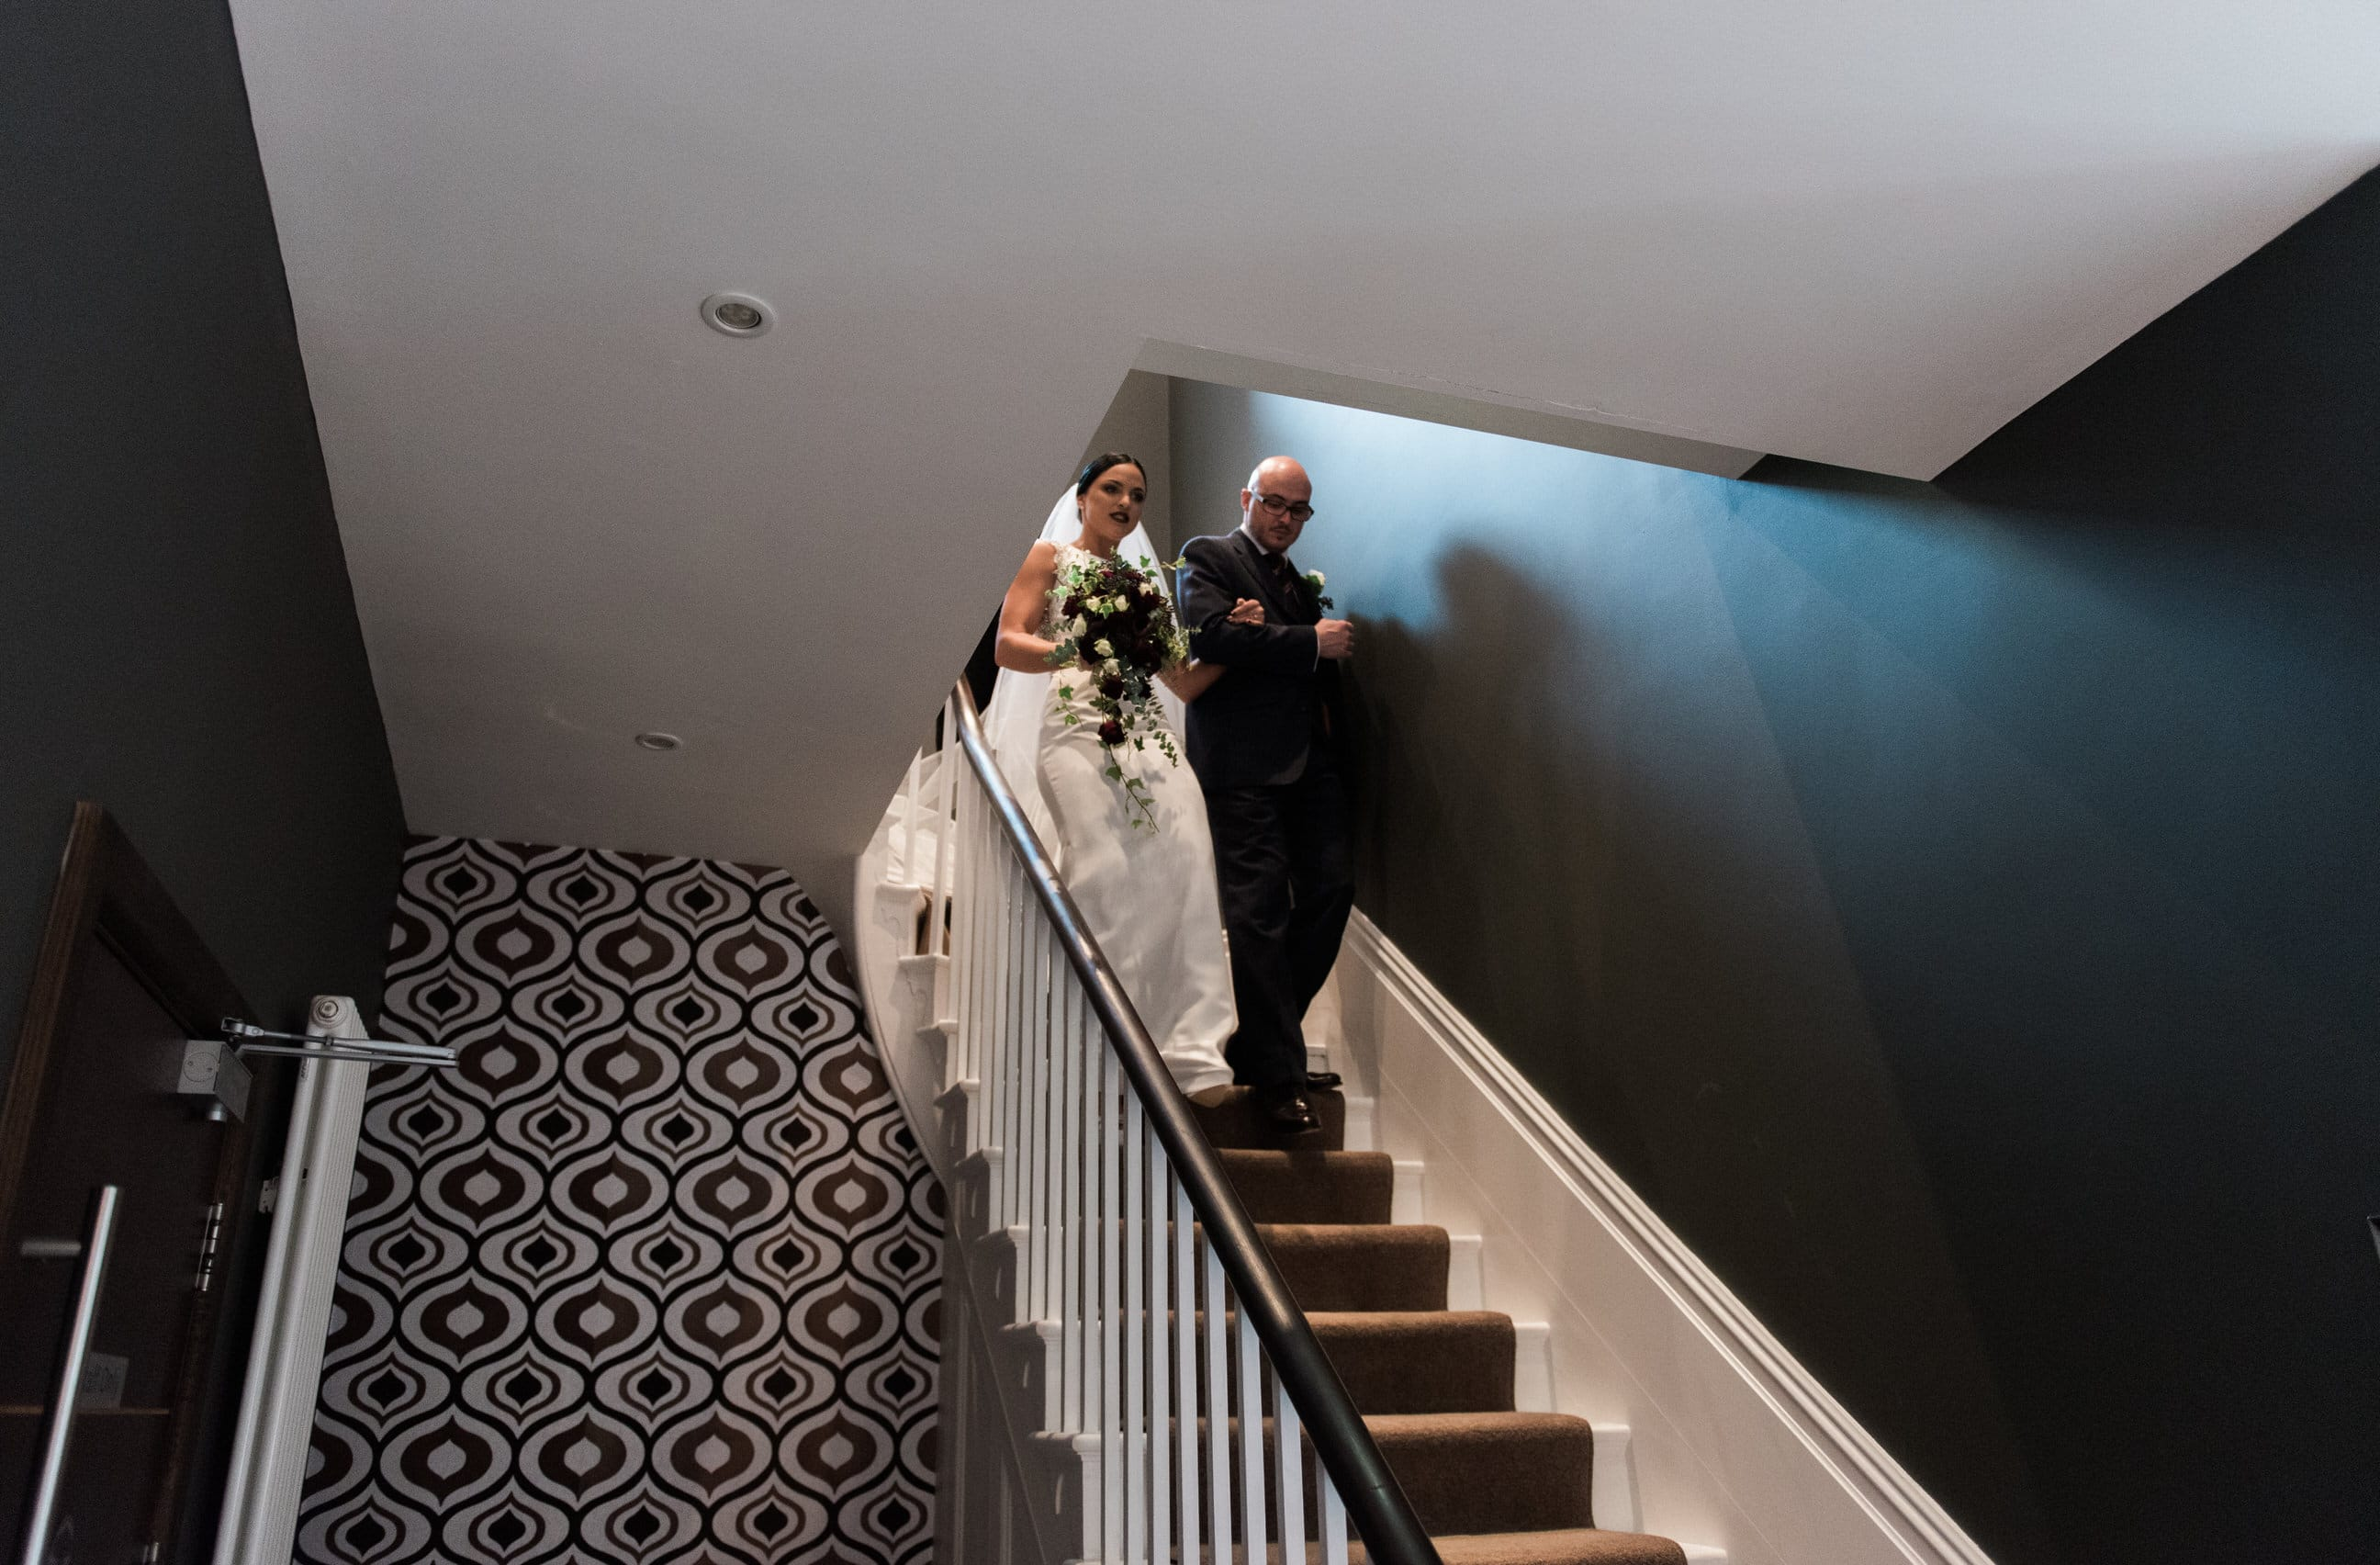 Bride and groomsman walking down the stairs